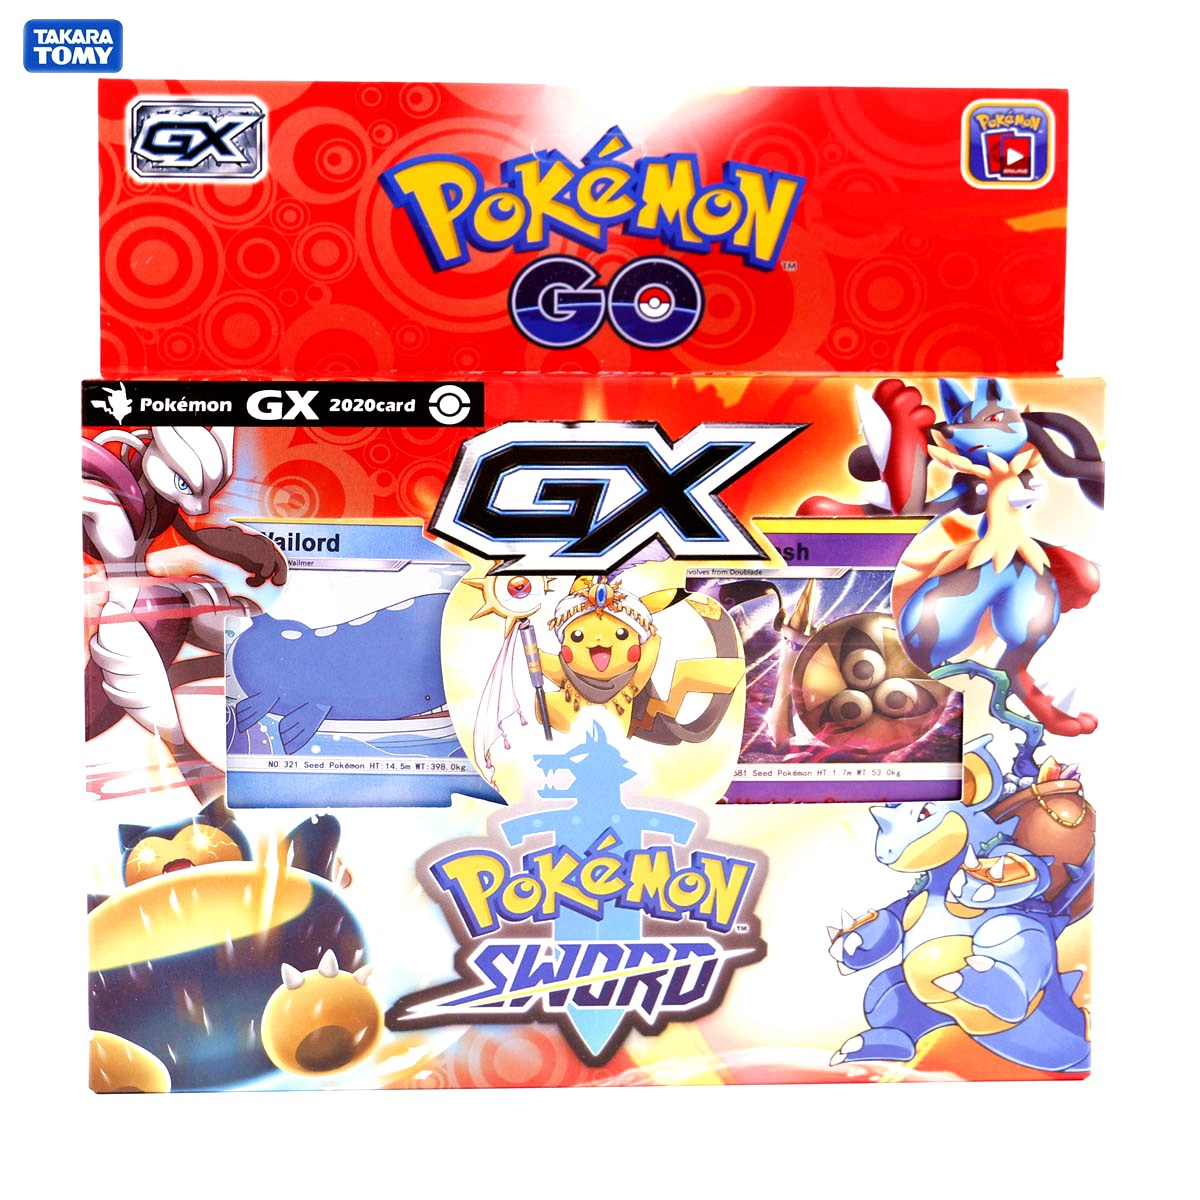 tomy-font-b-pokemon-b-font-2020-latest-54-card-solitaire-font-b-pokemon-b-font-card-sword-and-shield-box-trading-card-game-kids-collection-toys-gift